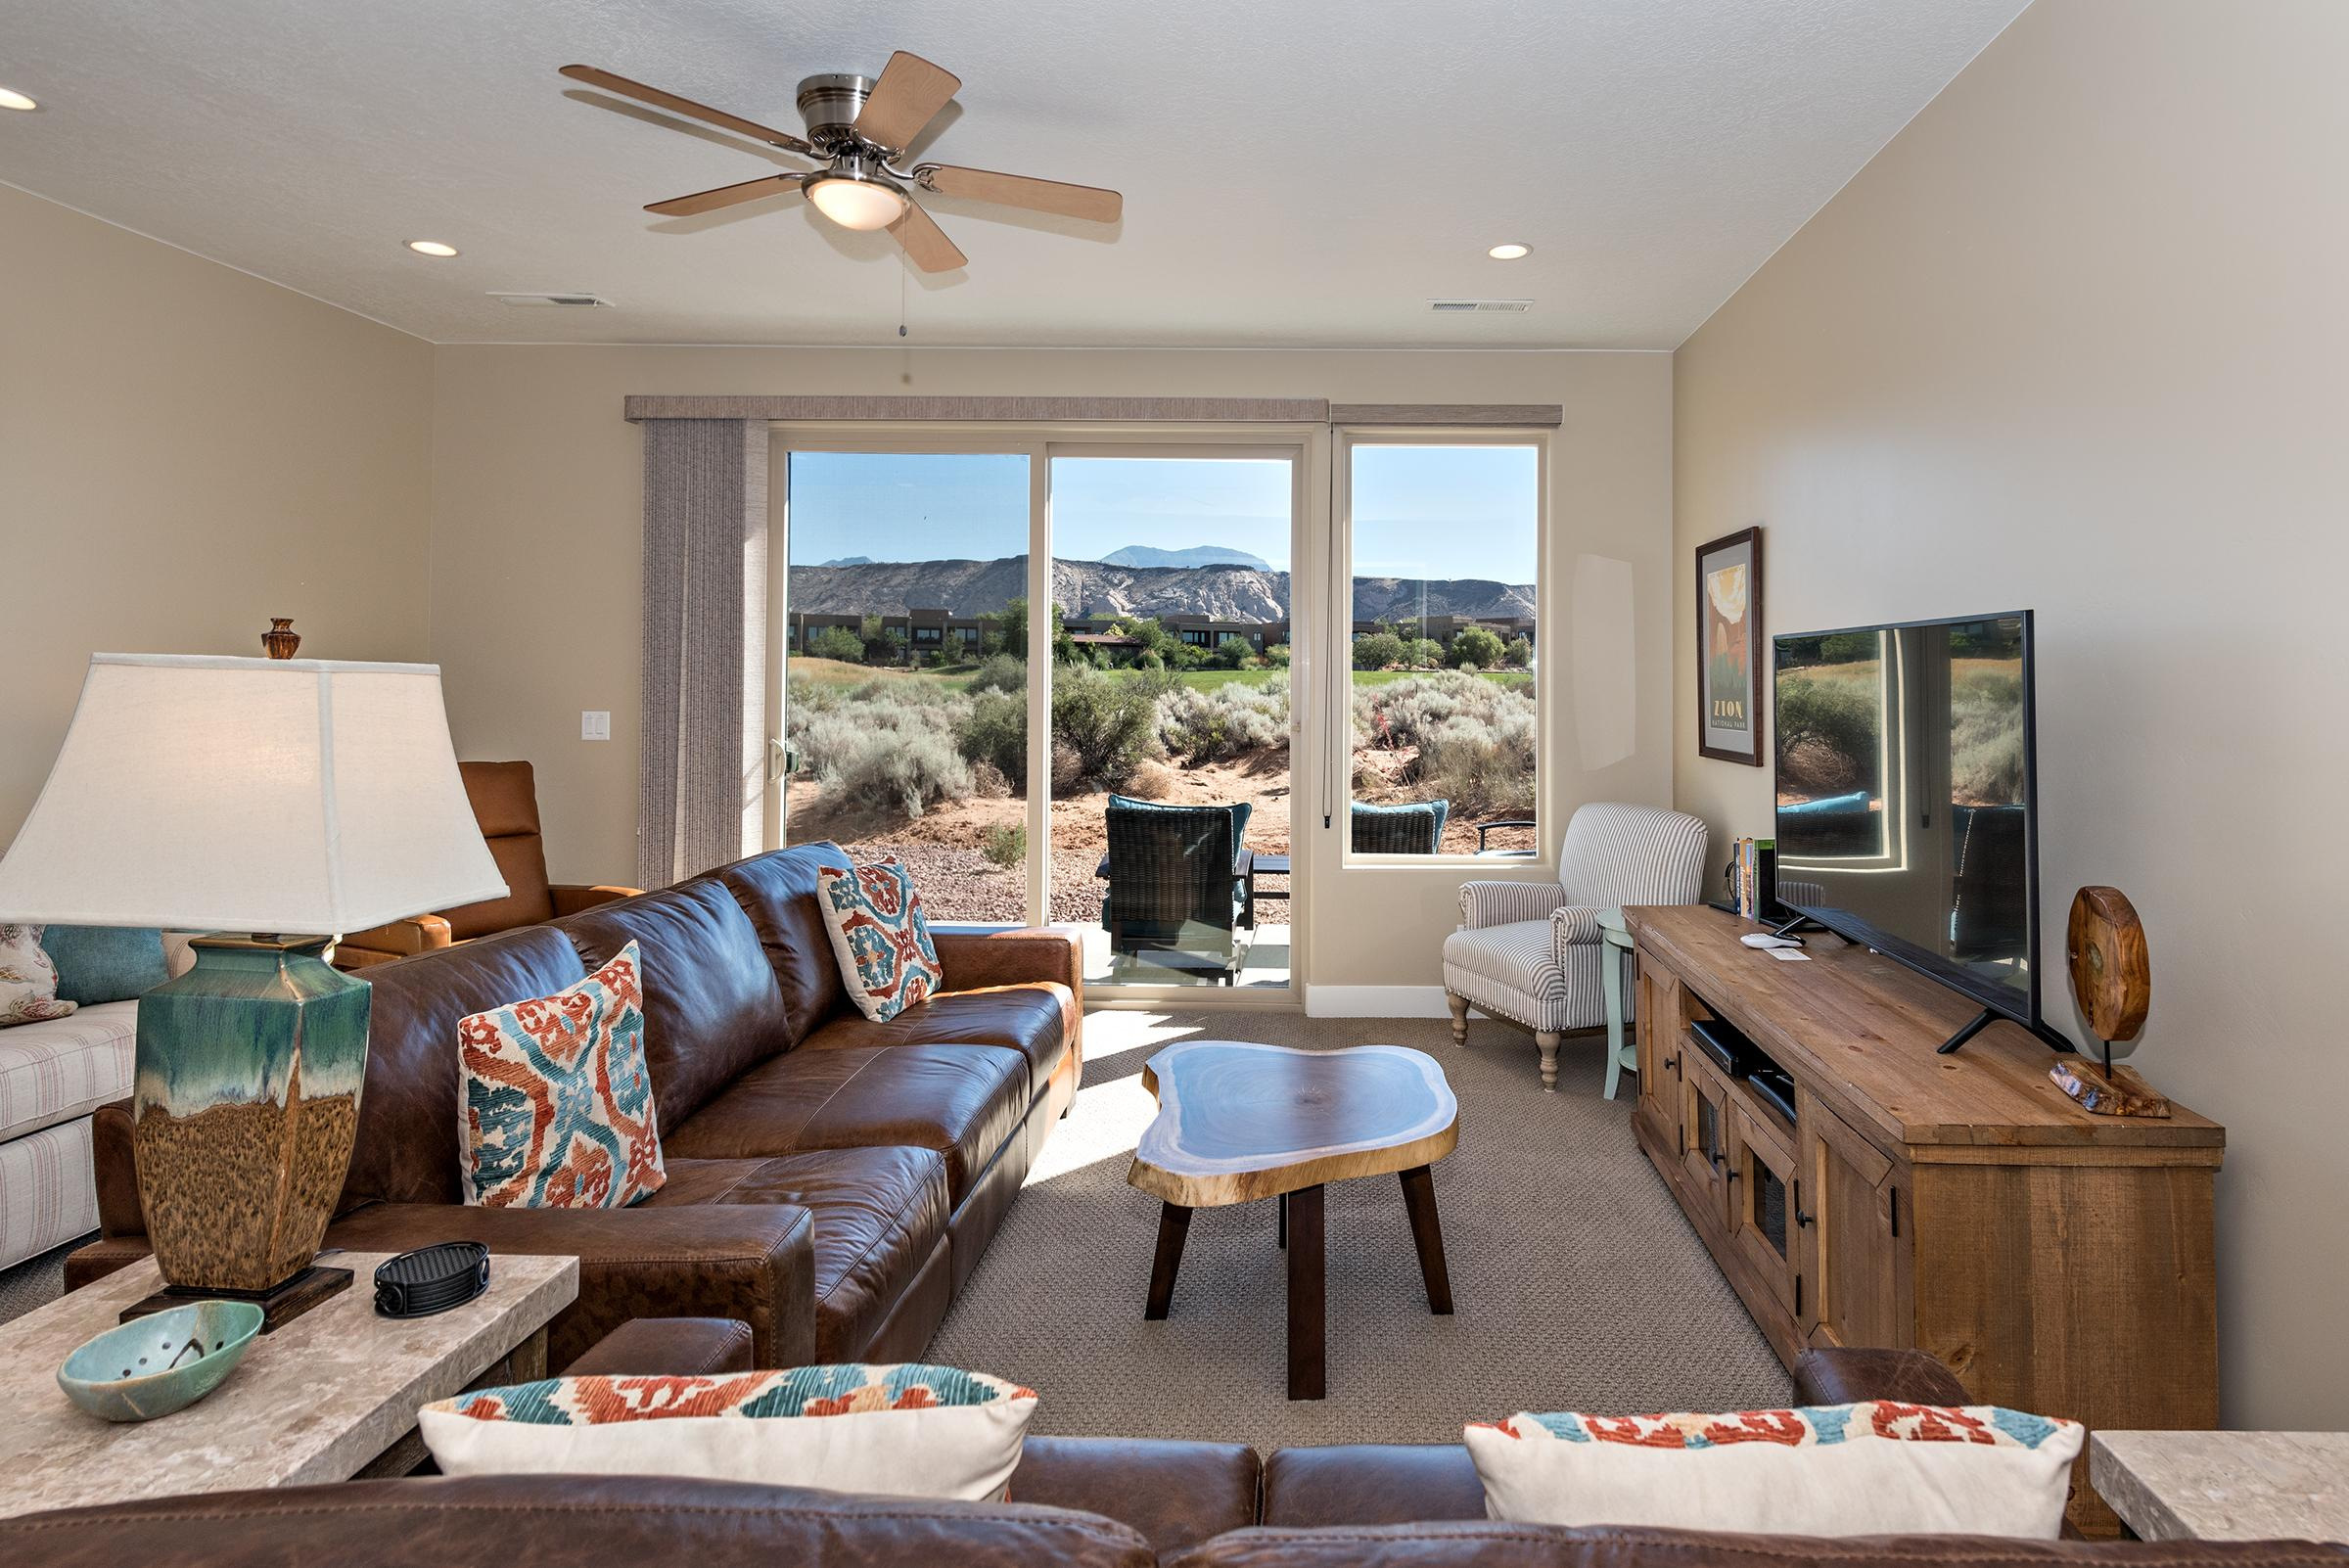 Spacious living room with sliding glass doors that open to patio facing the golf course.